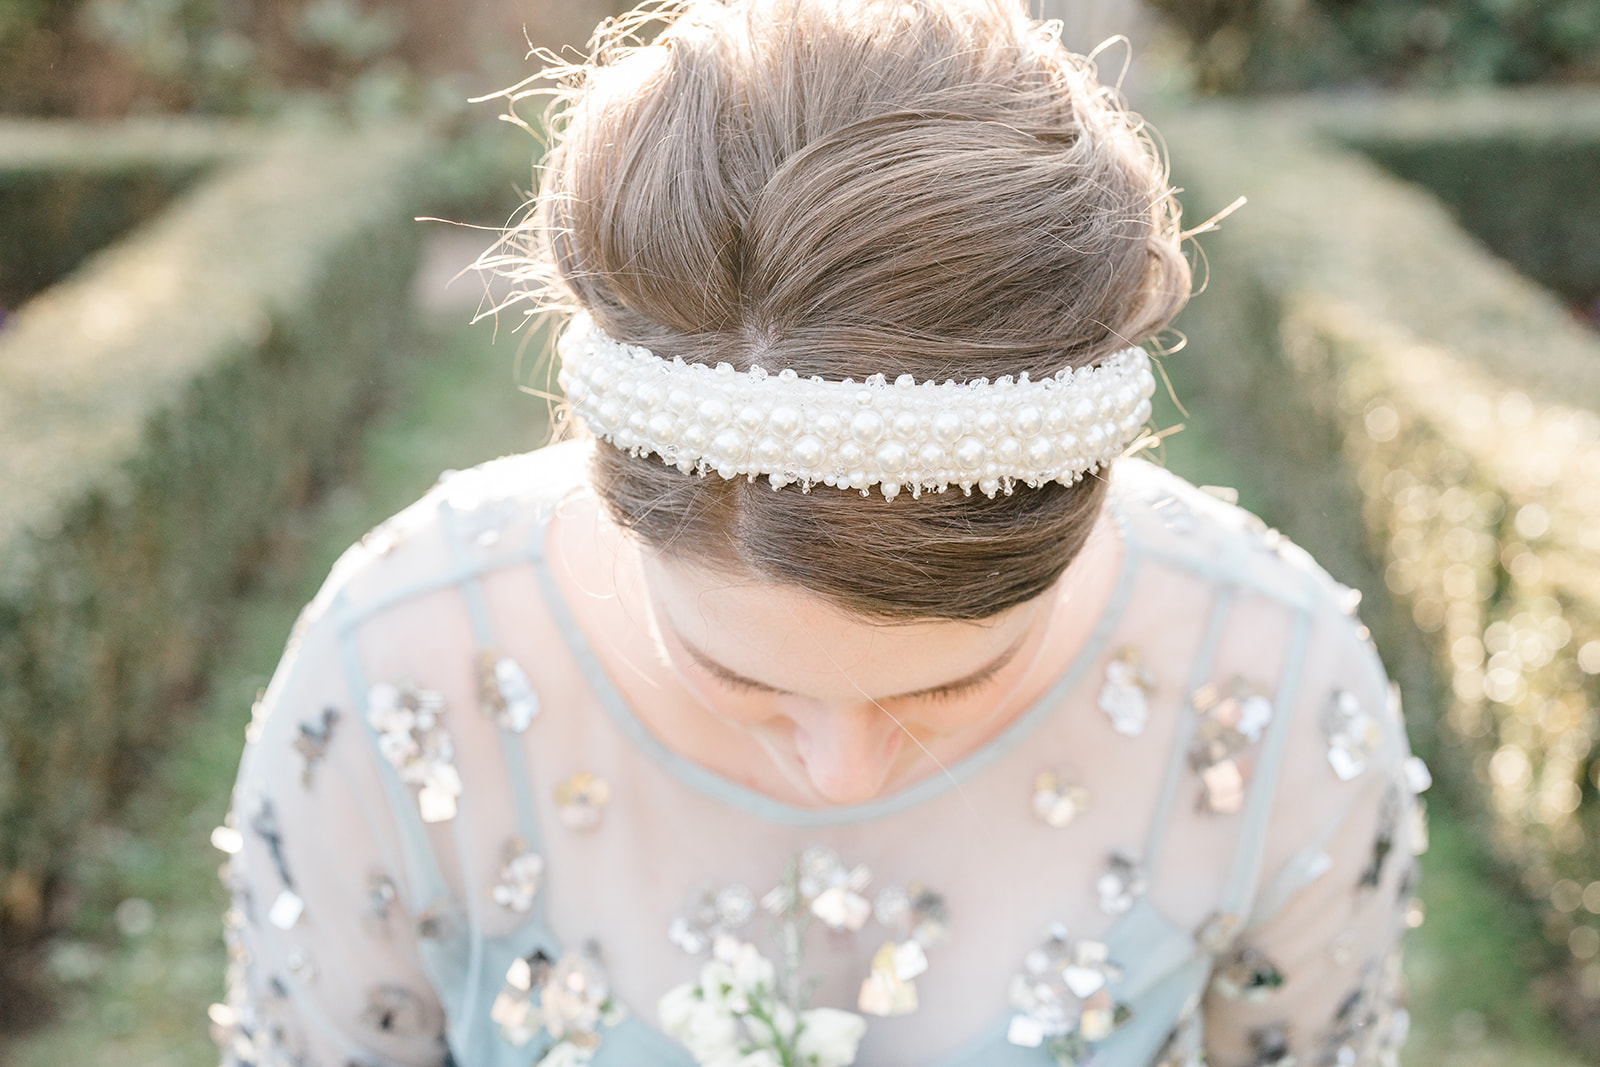 Bridal headband with pearls - Kelsie Scully Photography